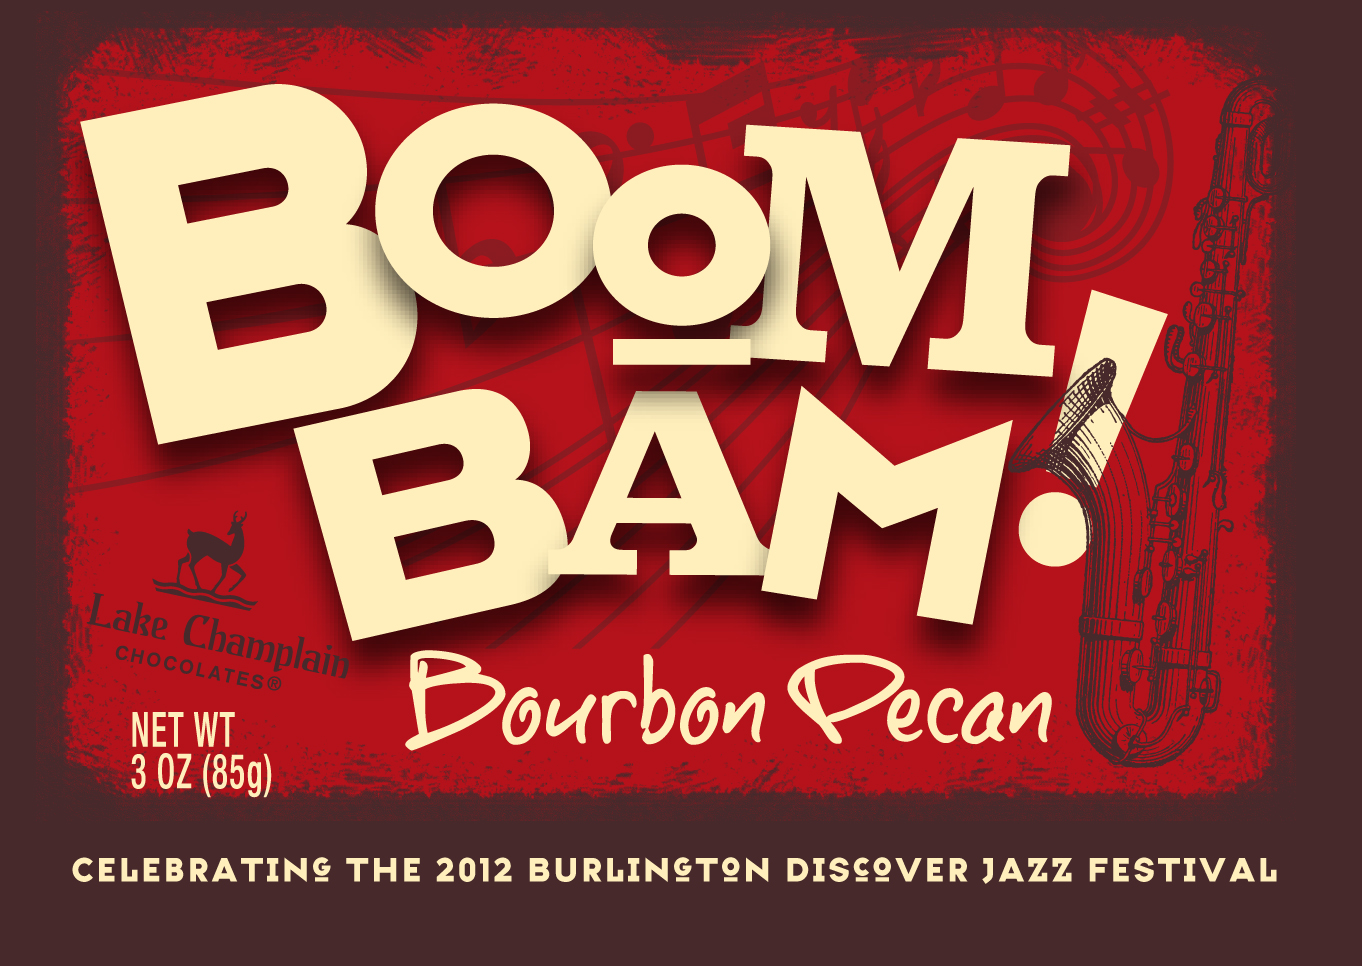 Lake Champlain Chocolates: BOOM! BAM! Bourbon Pecan Chocolate Experience